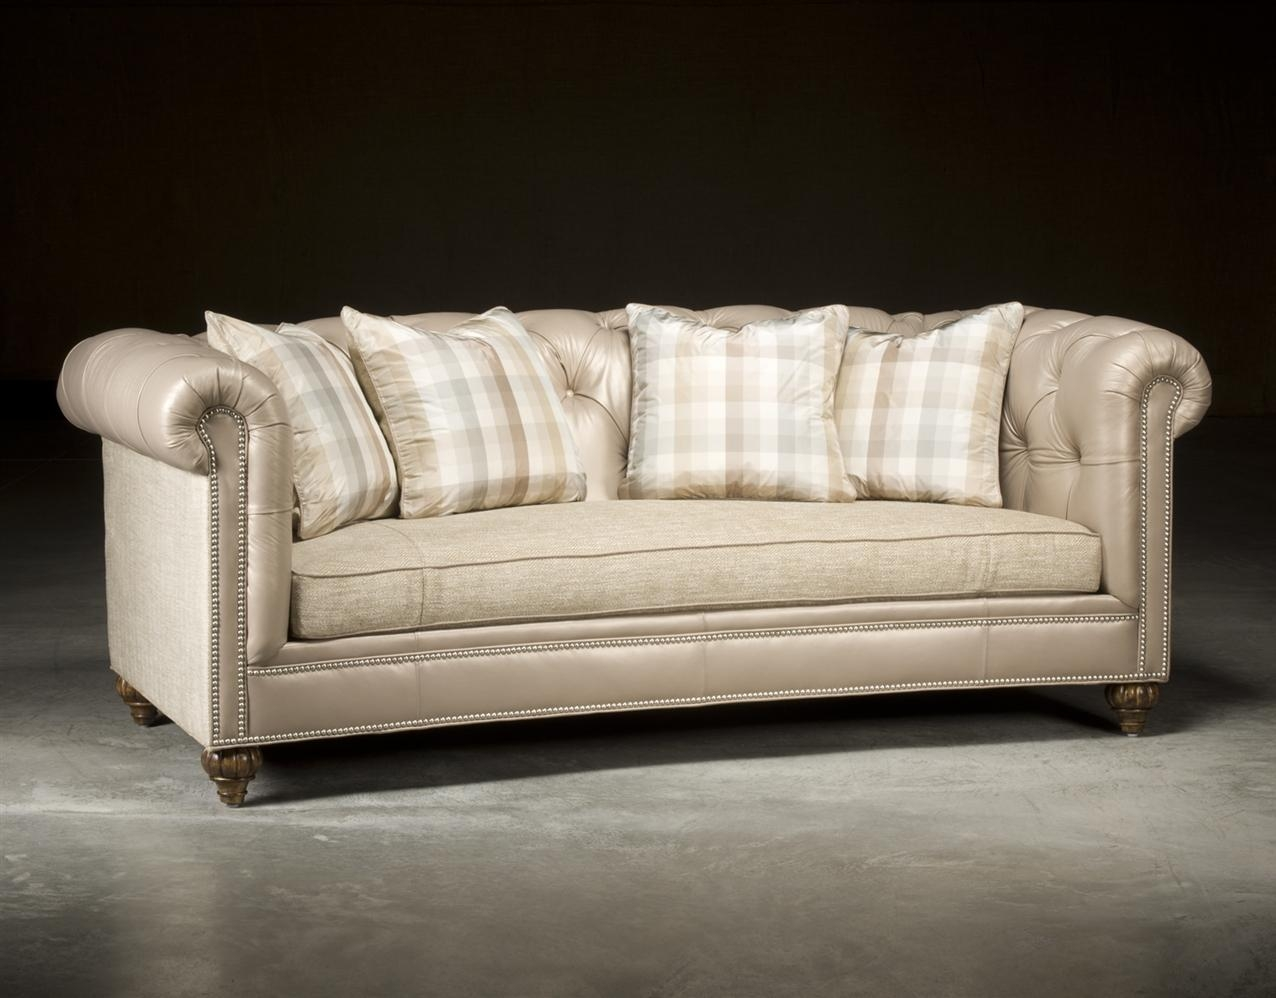 Chesterfield Tufted Sofa, High End Upholstered Furniture Pertaining To High End Sofa (Image 4 of 20)